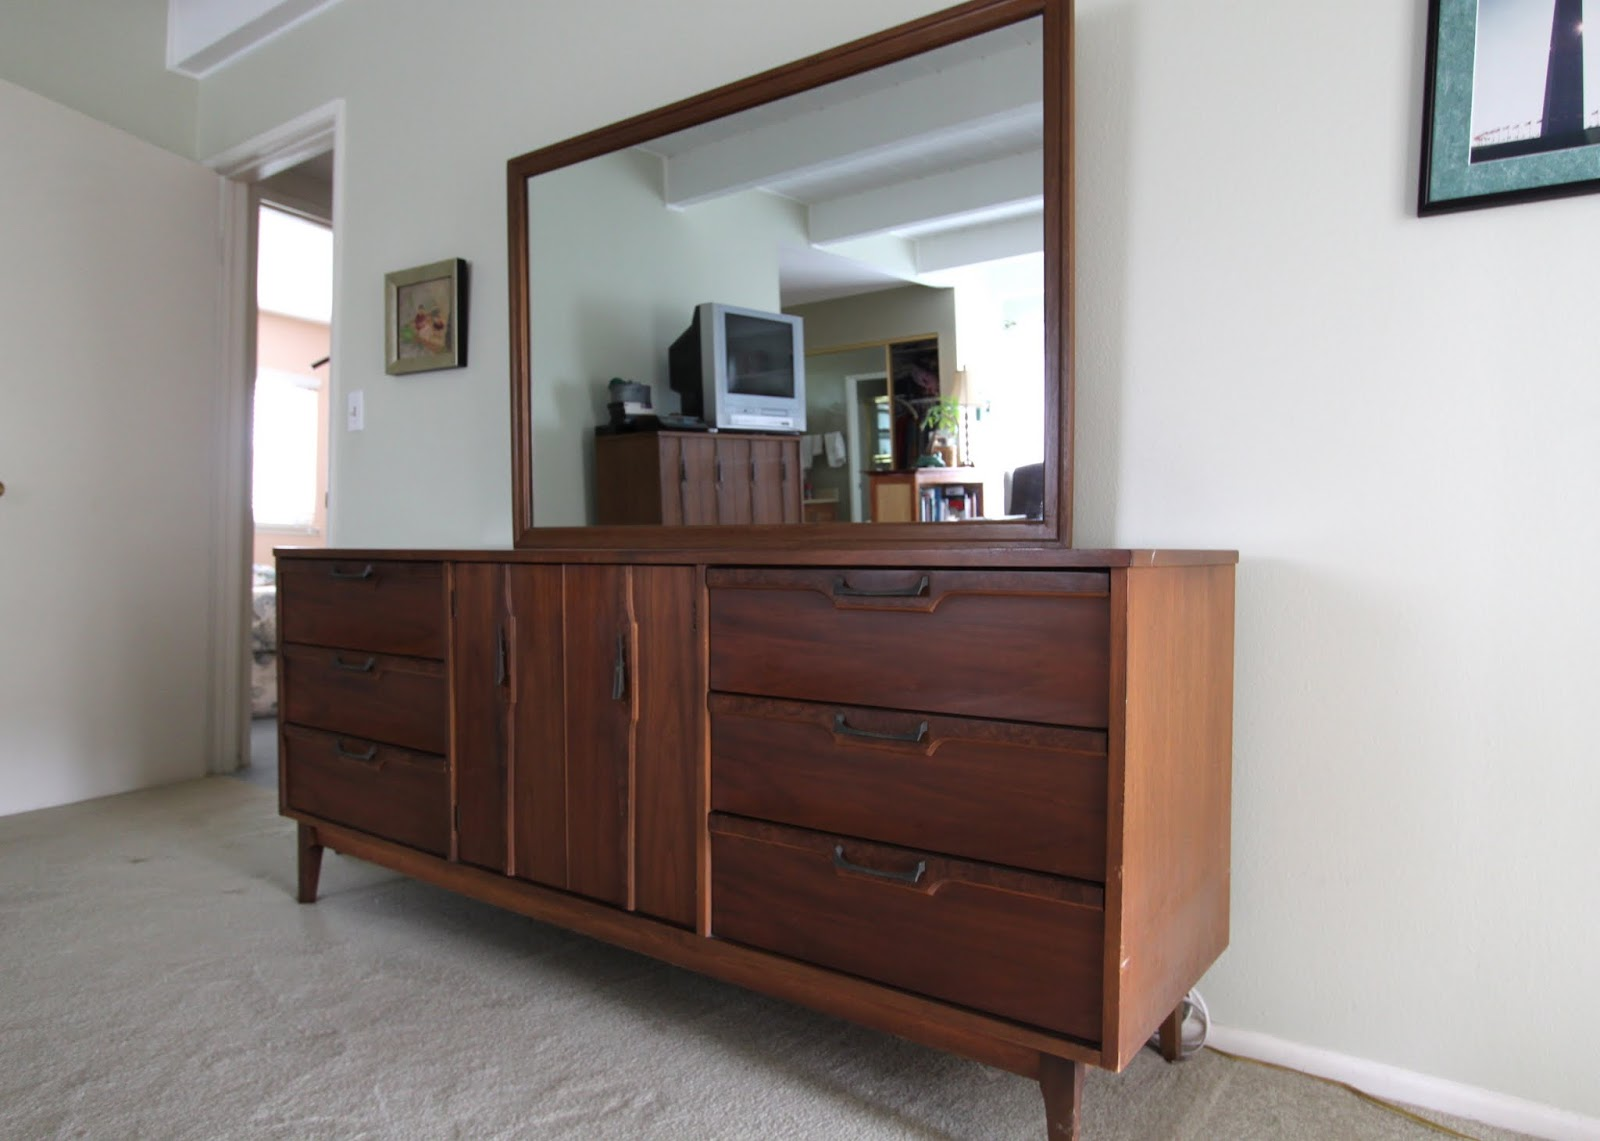 lenoir house bedroom furniture broyhill 39 s second cousin mid century modern remodel. Black Bedroom Furniture Sets. Home Design Ideas